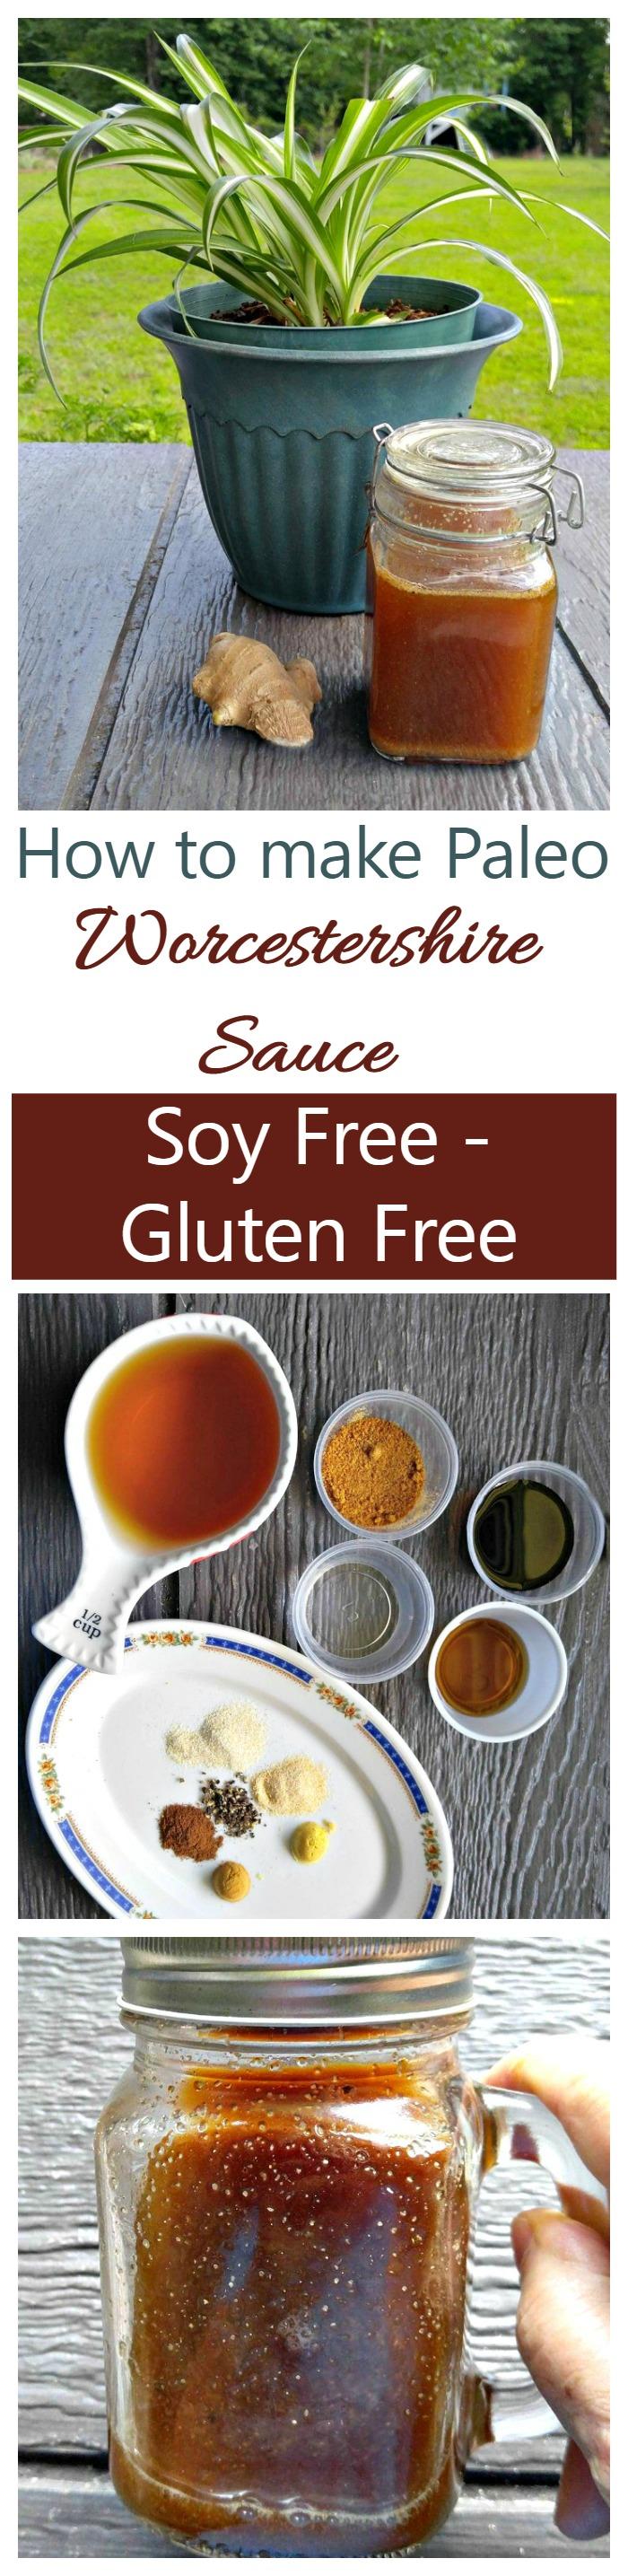 This Paleo Worcestershire Sauce is easy to make and is both soy free and gluten free. It's ready in less than five minutes and tastes great too.